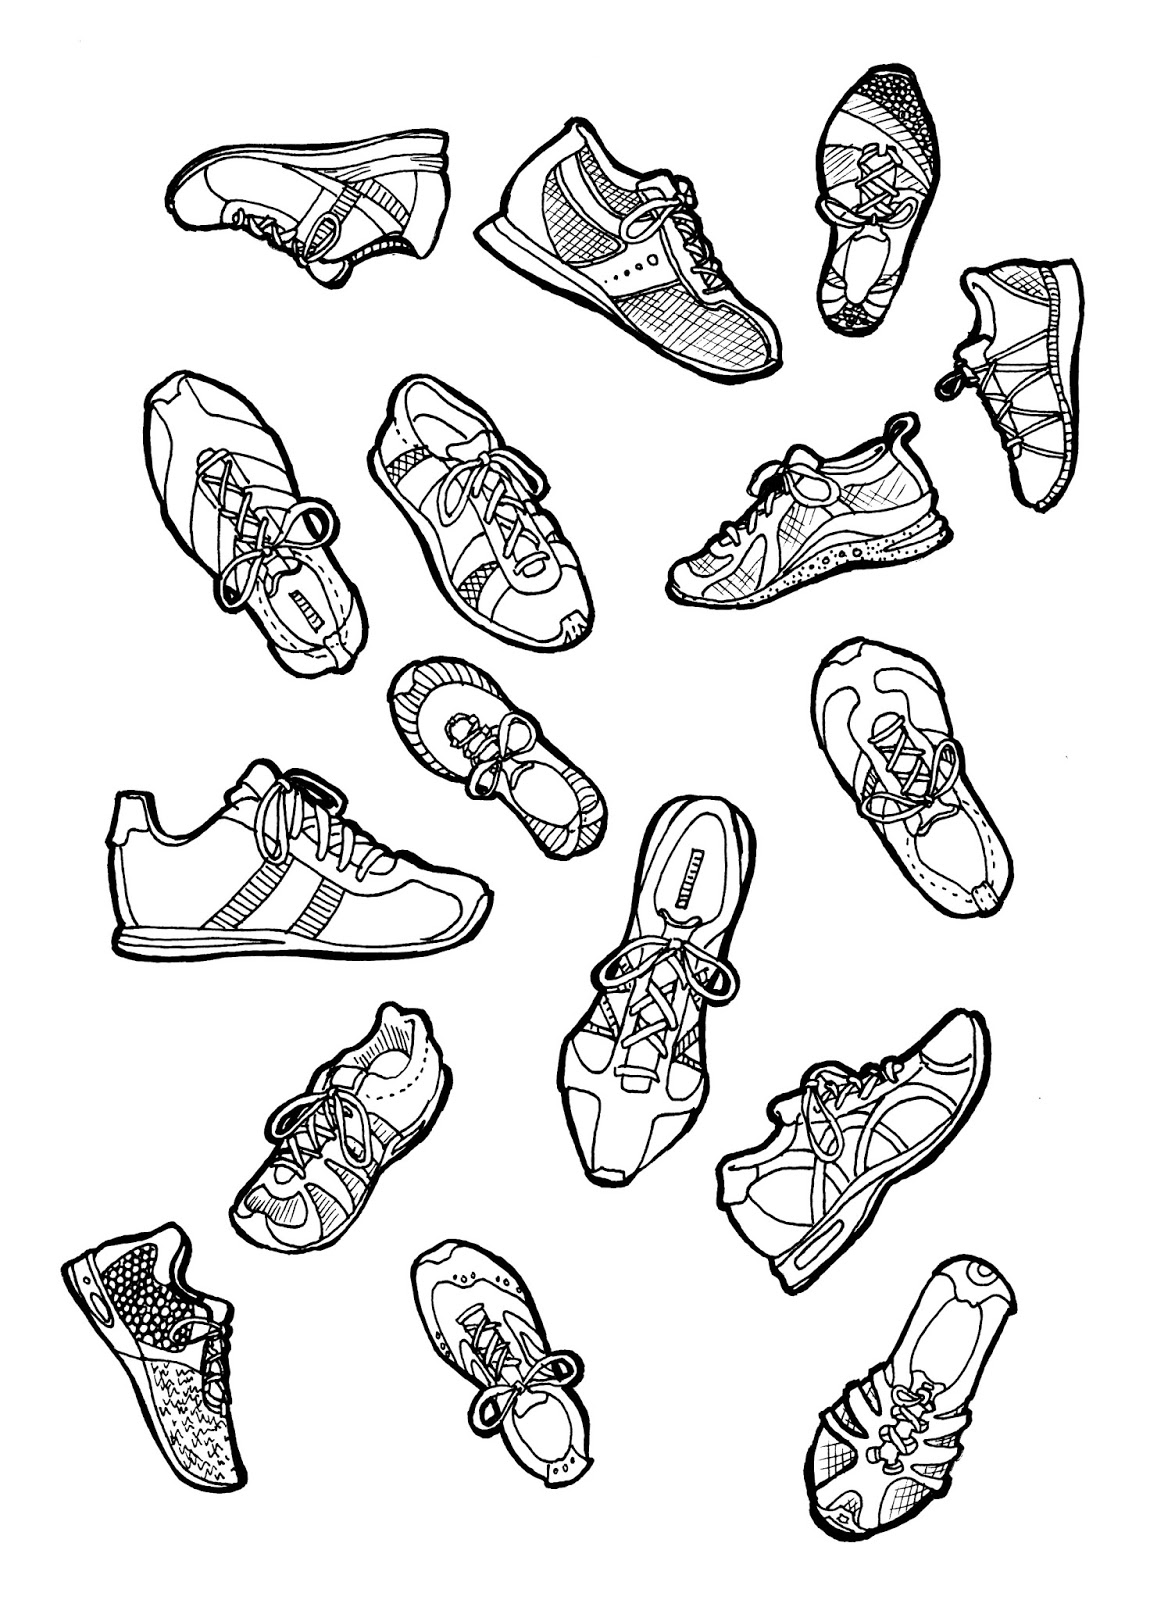 Post blank Shoe Template 280585 together with Dibujo Zapatillas Para Colorear TyEarLree furthermore Cupcakes furthermore Tipos De Sapatos as well Stock Illustration Running Shoes Coloring Page Useful As Book Kids Image52086420. on high heel coloring page